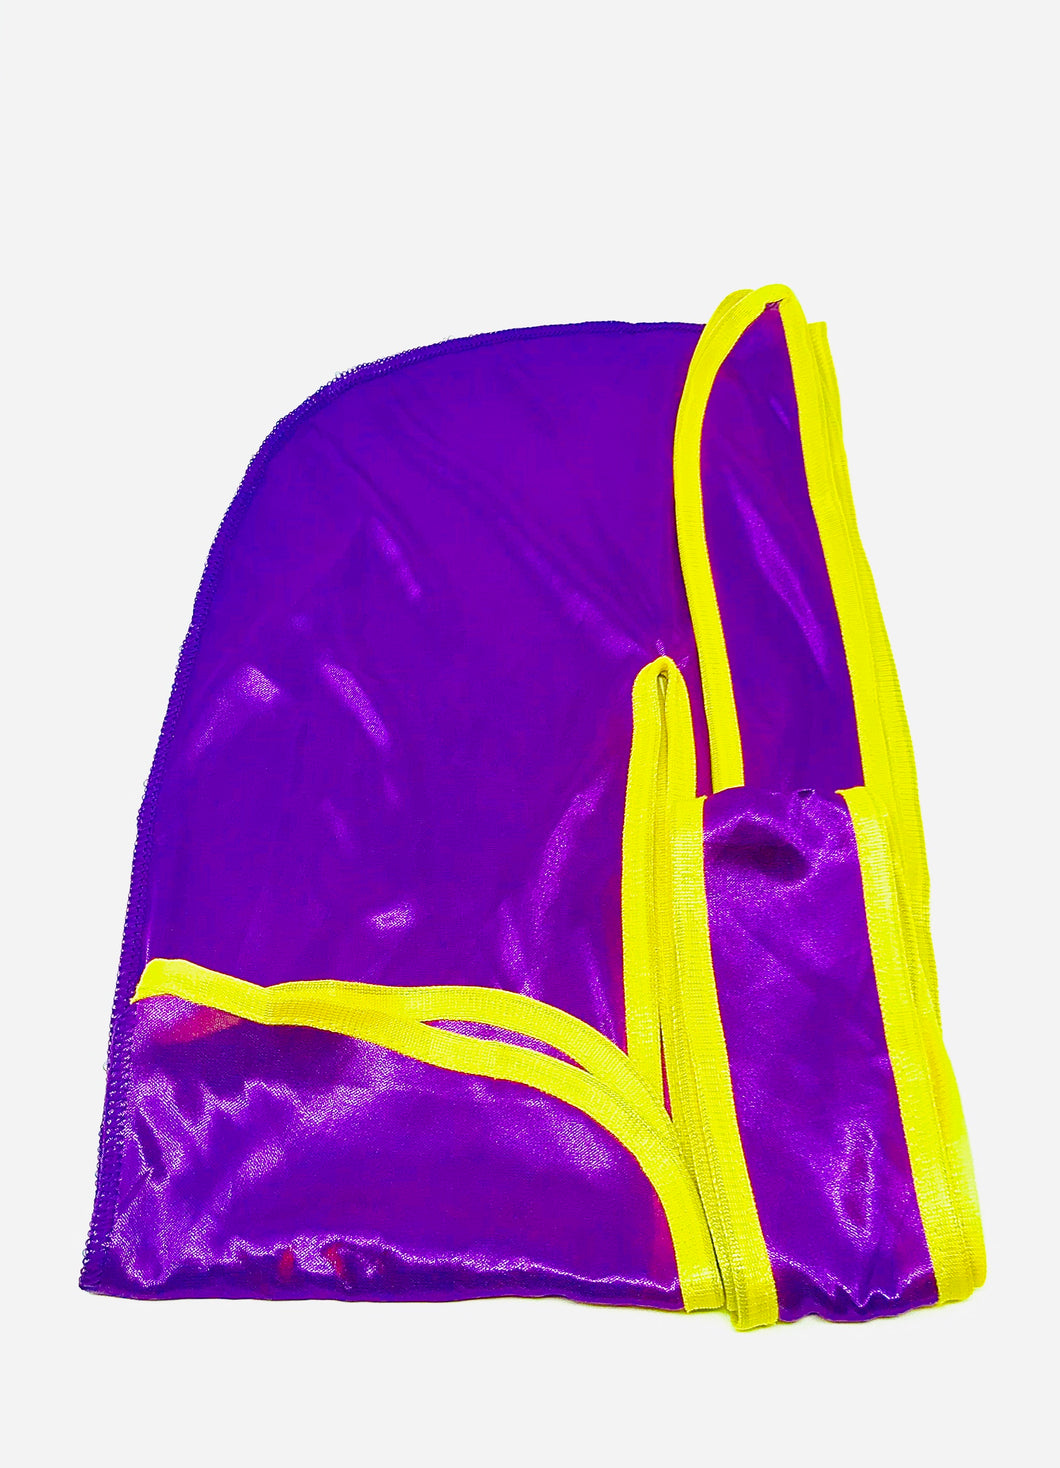 Rimix *PATENT PENDING* Silky Durag **Limited Edition - Purple/Yellow Trim